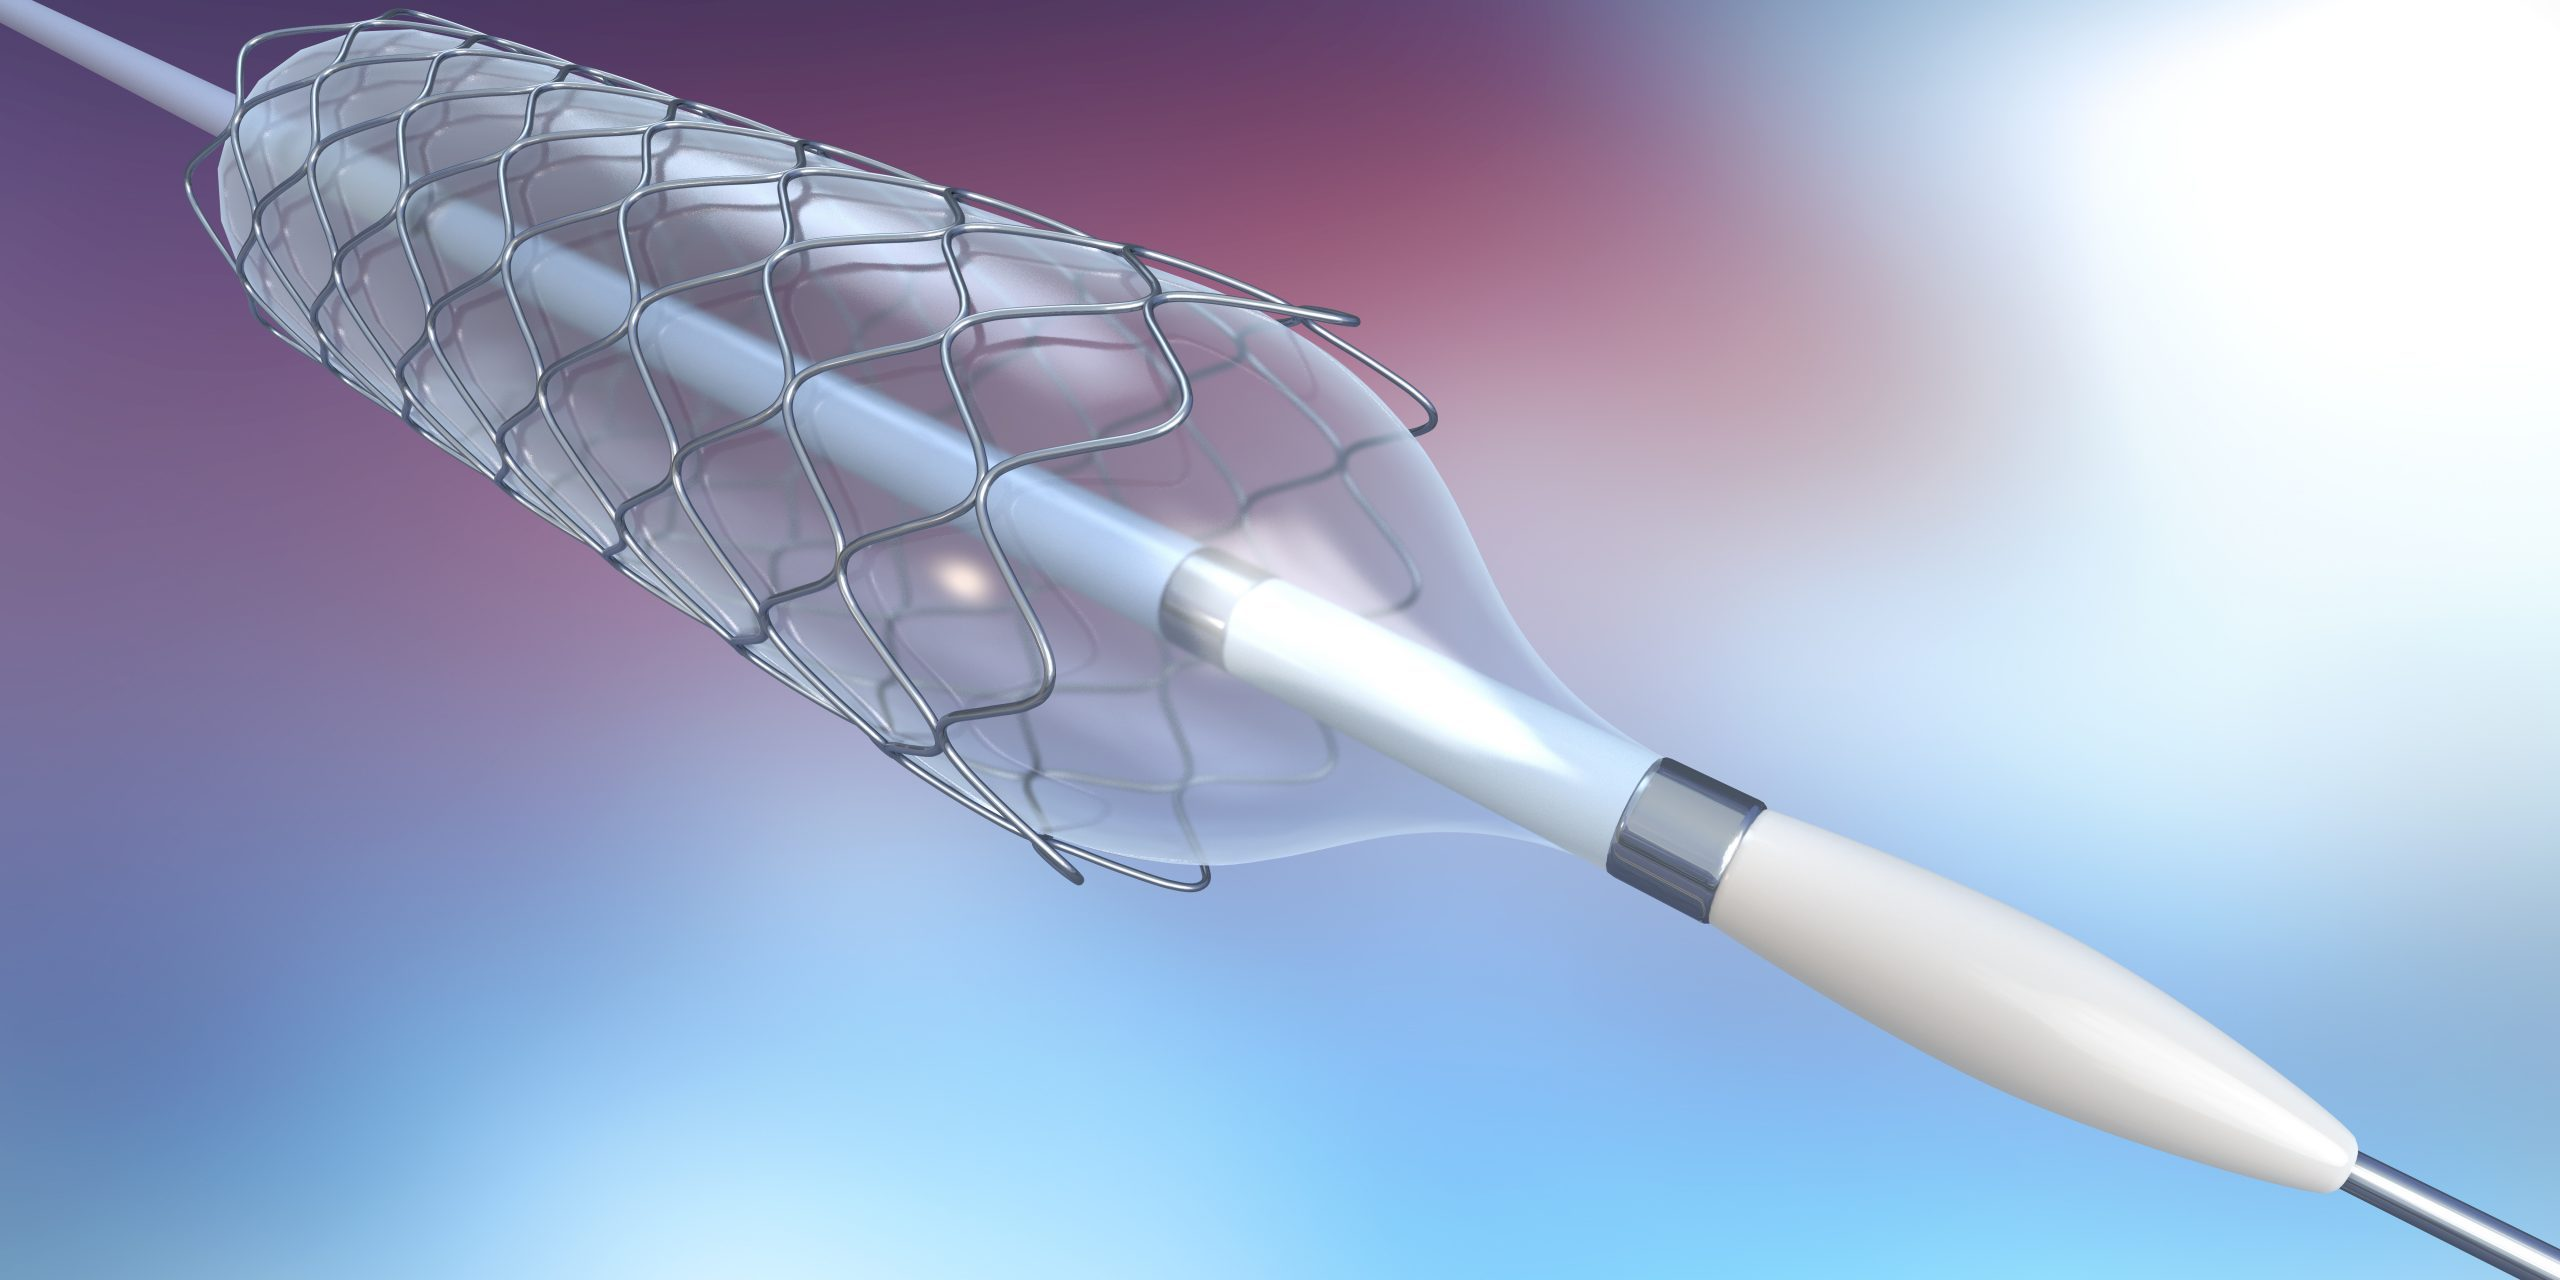 3d illustration of catheter for stent implantation for supporting blood circulation into blood vessels